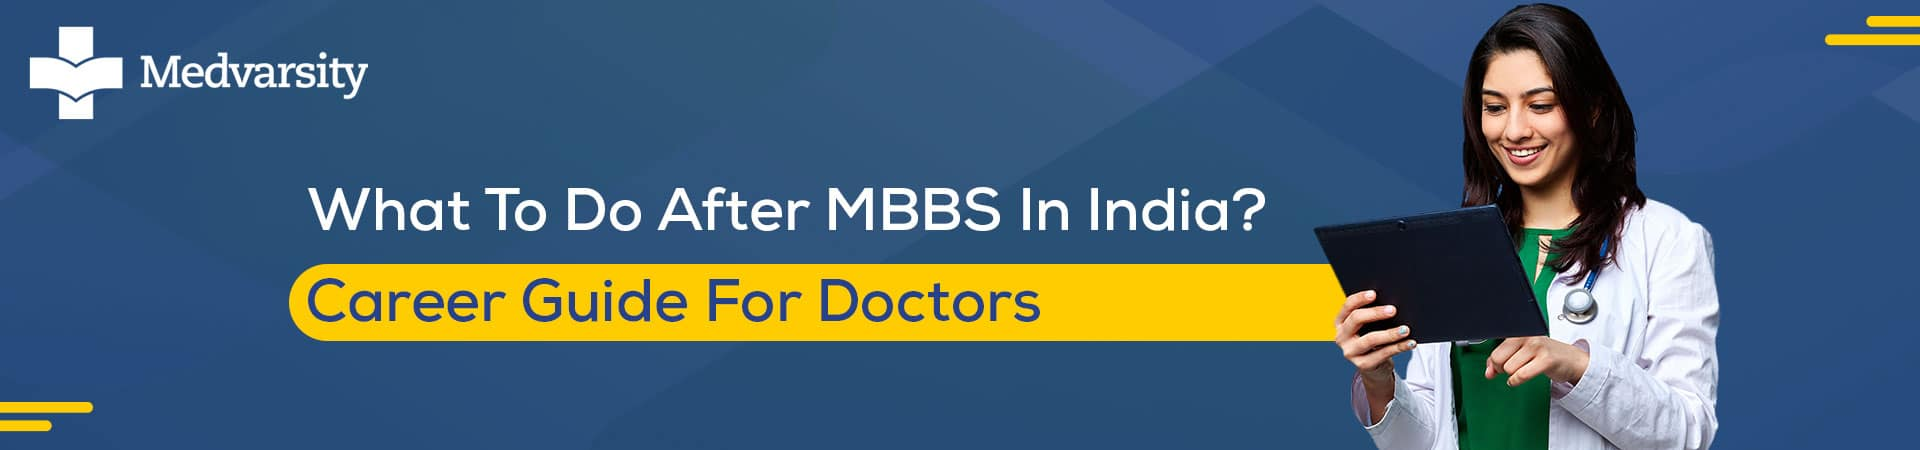 What To Do After MBBS In India? – Career Guide For Doctors